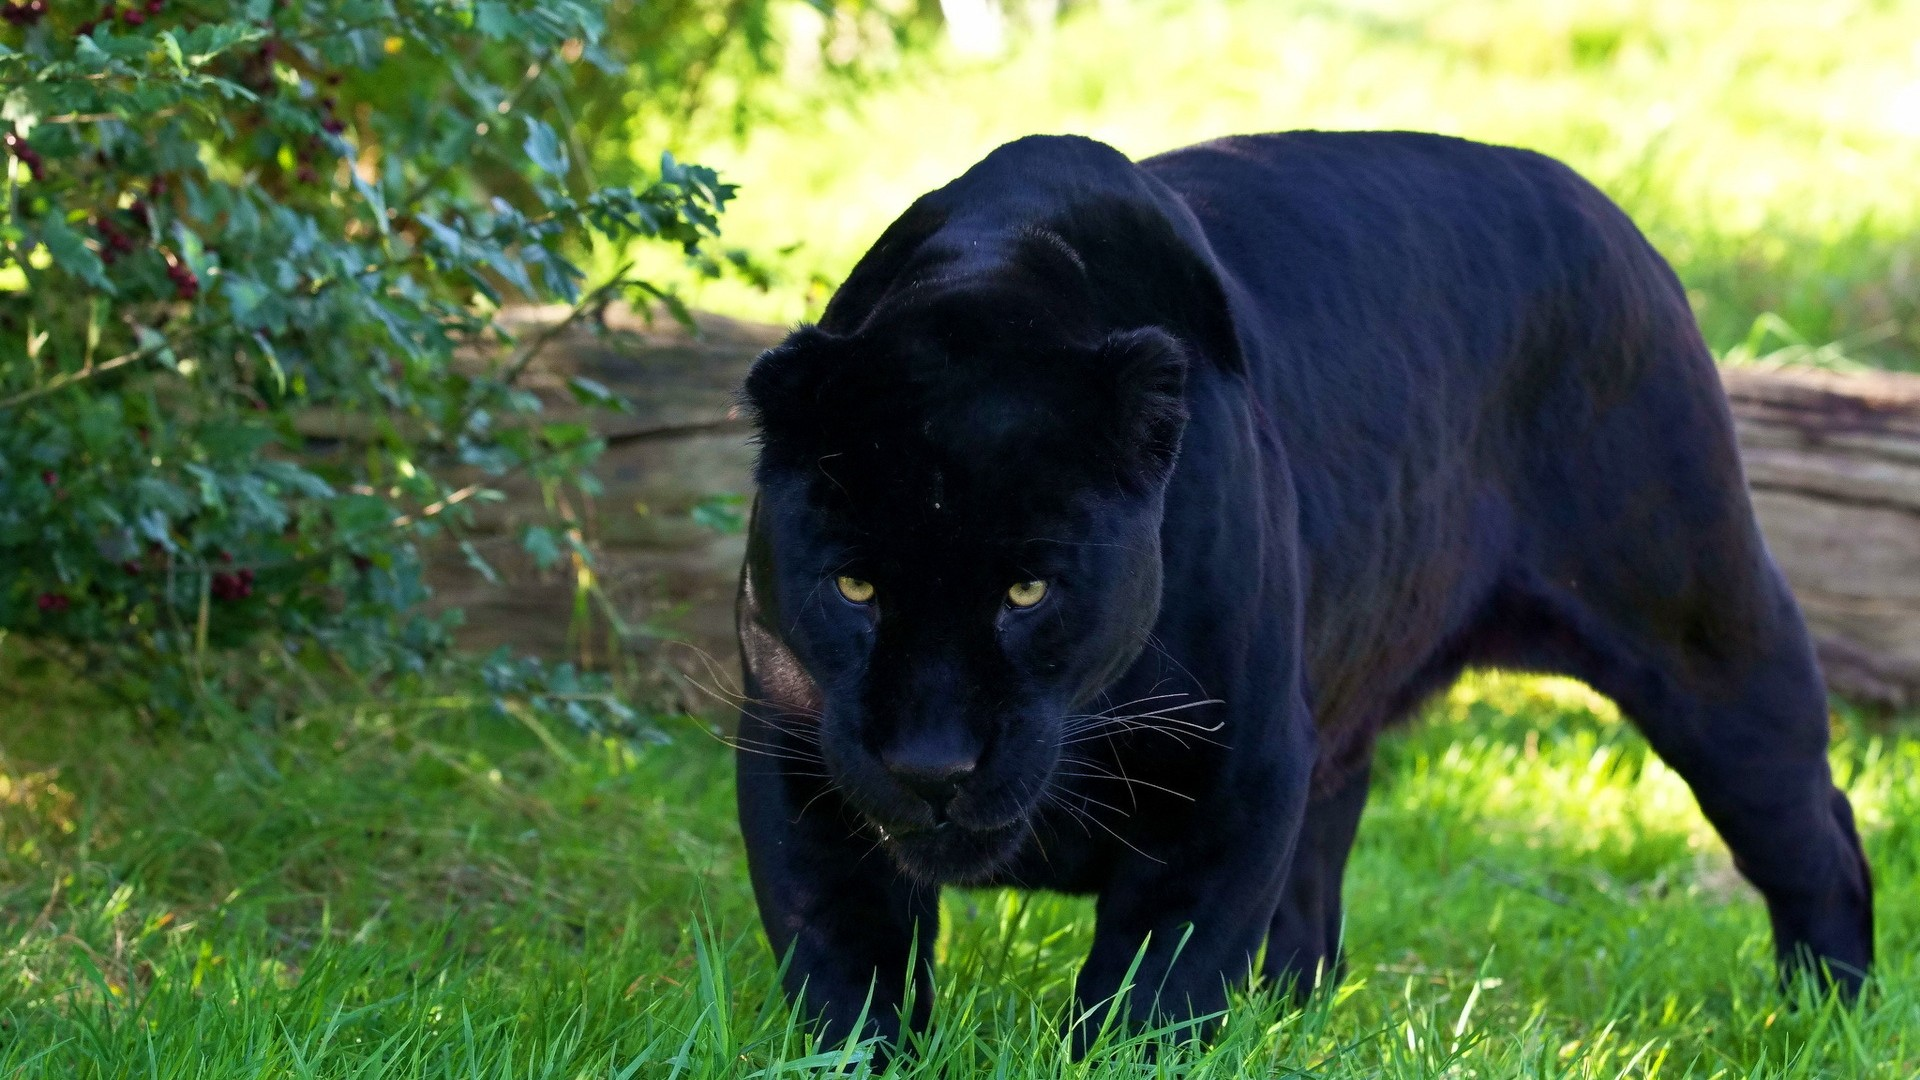 Black Cat Eyes Wallpaper Black Panther Wallpapers High Quality Download Free